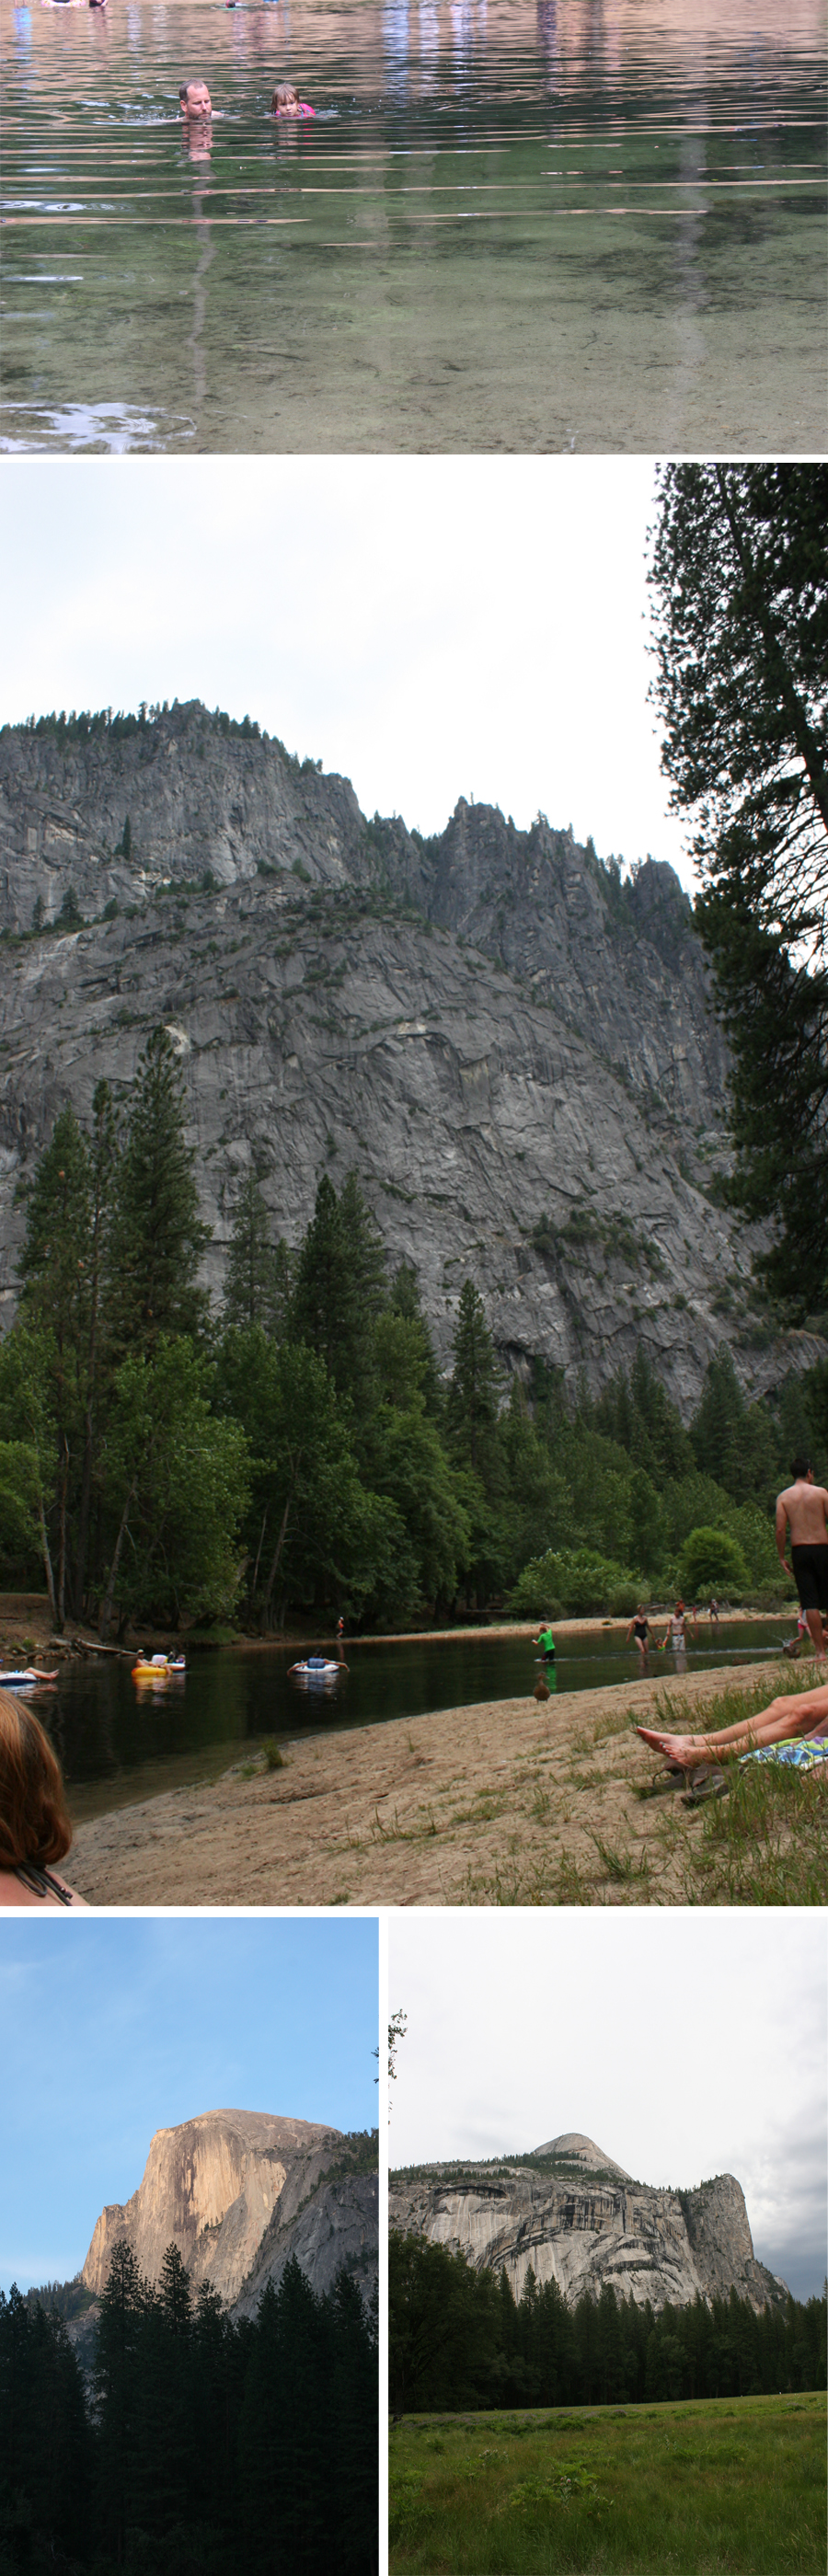 Yosemite Valley 2